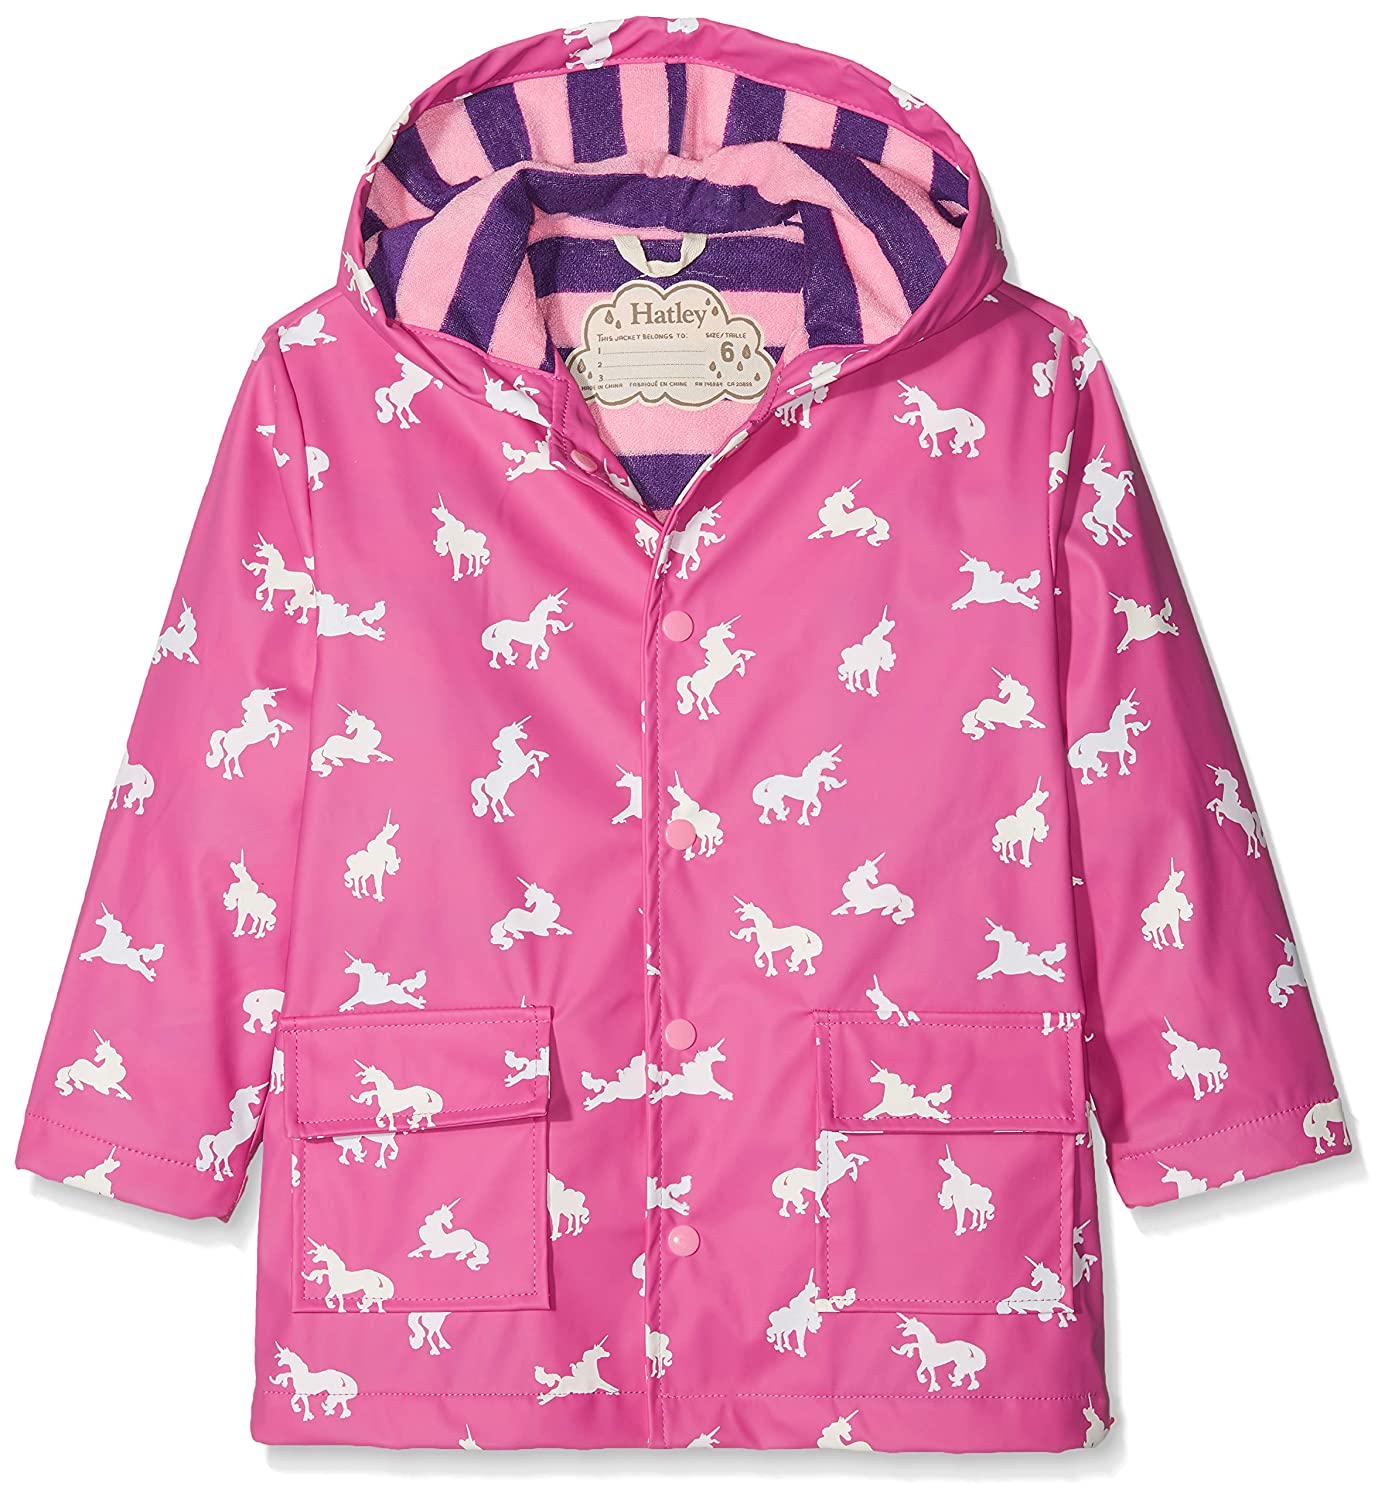 Hatley Kids Colour Changing Raincoat - Unicorn F18UCK1336